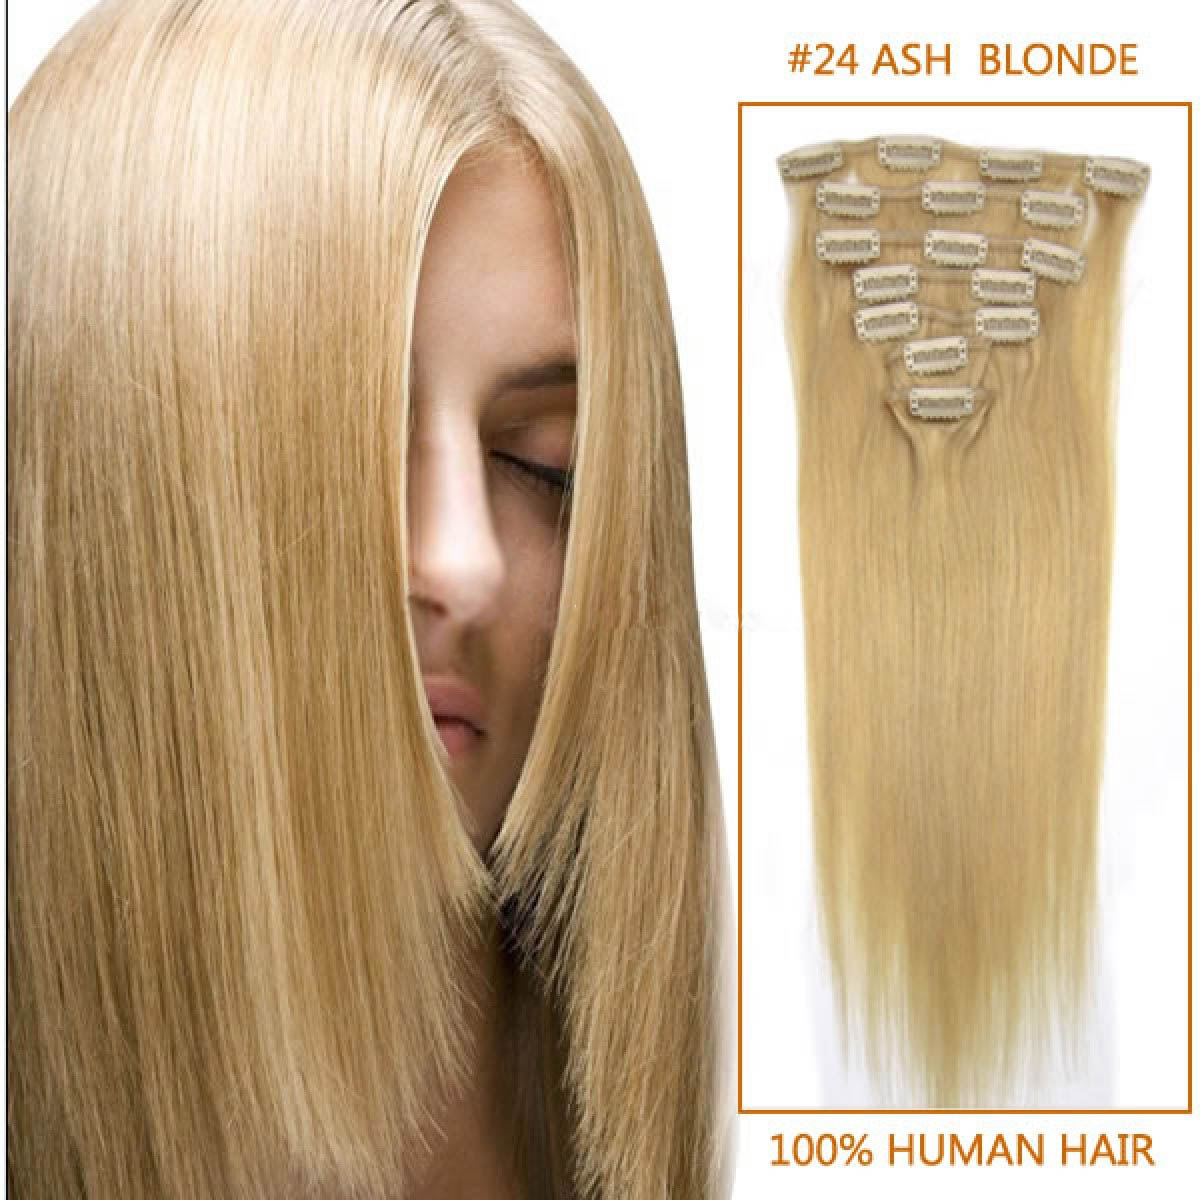 Inch 24 ash blonde clip in remy human hair extensions 12pcs 22 inch 24 ash blonde clip in remy human hair extensions 12pcs pmusecretfo Image collections